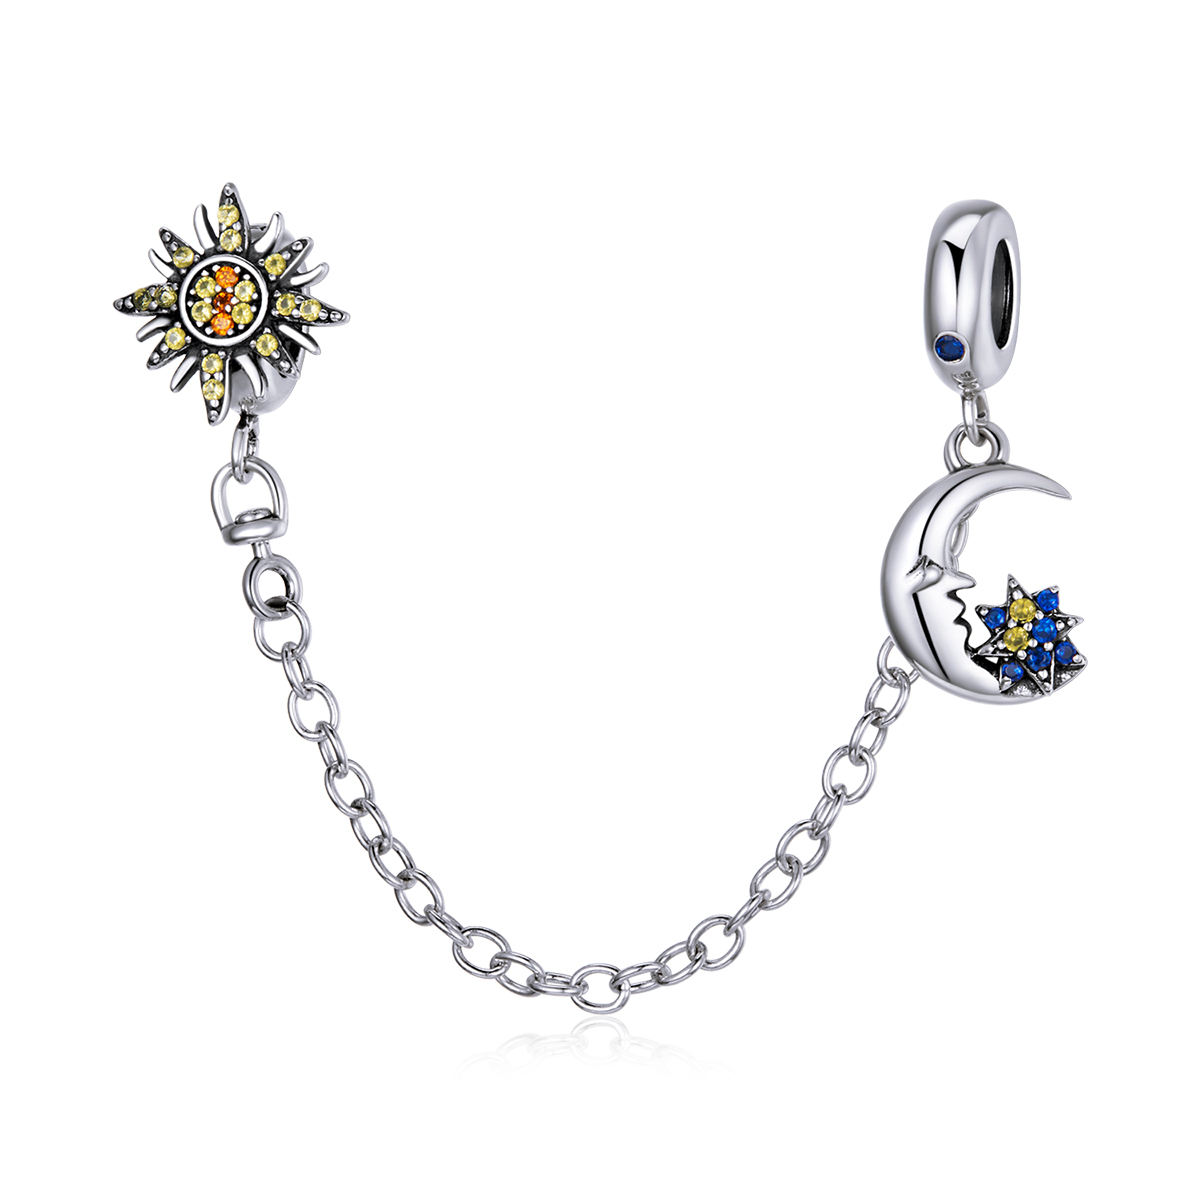 Hot sale sun and moon silver 925 safety chain charm jewelry